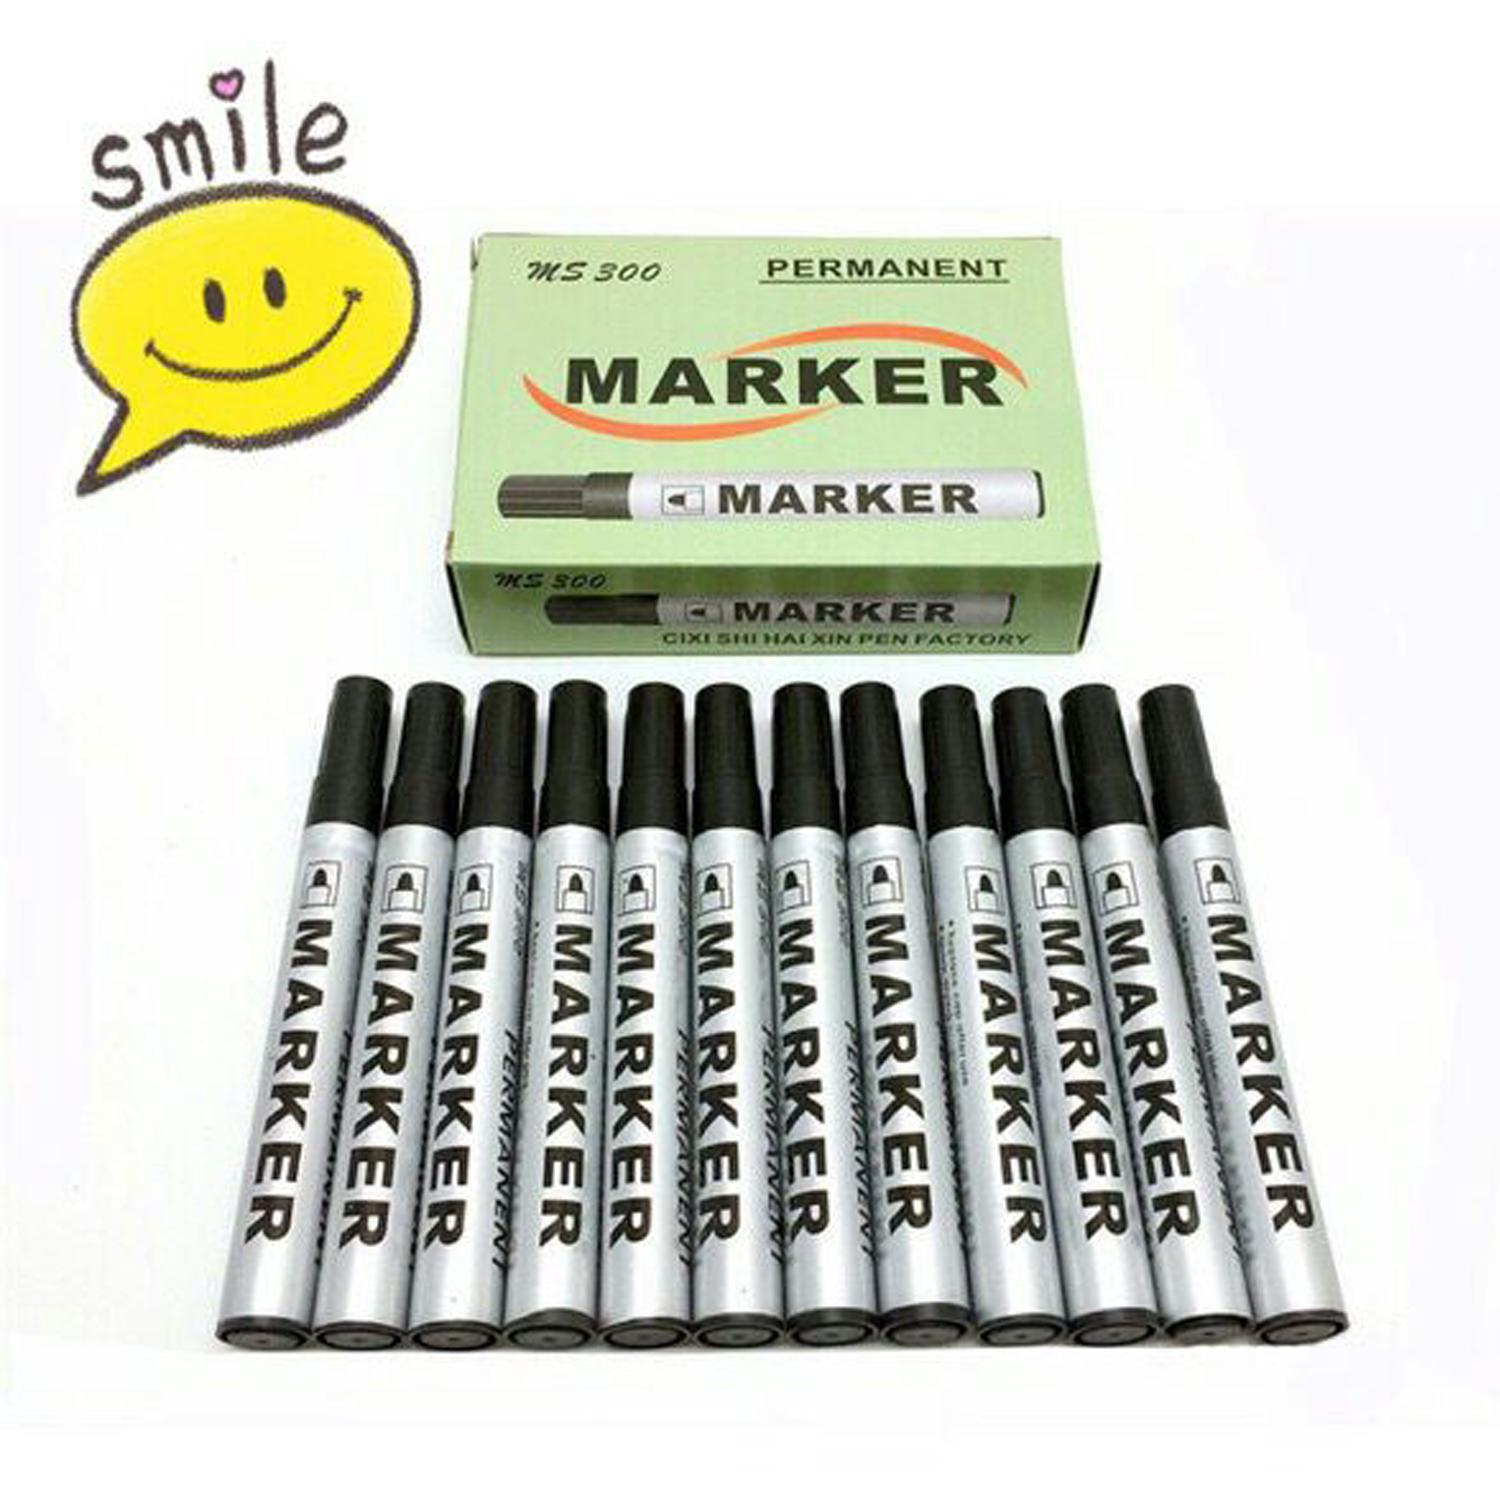 Marker School Supplies Permanent Marker 12pcs/1box By-300 By Movall.